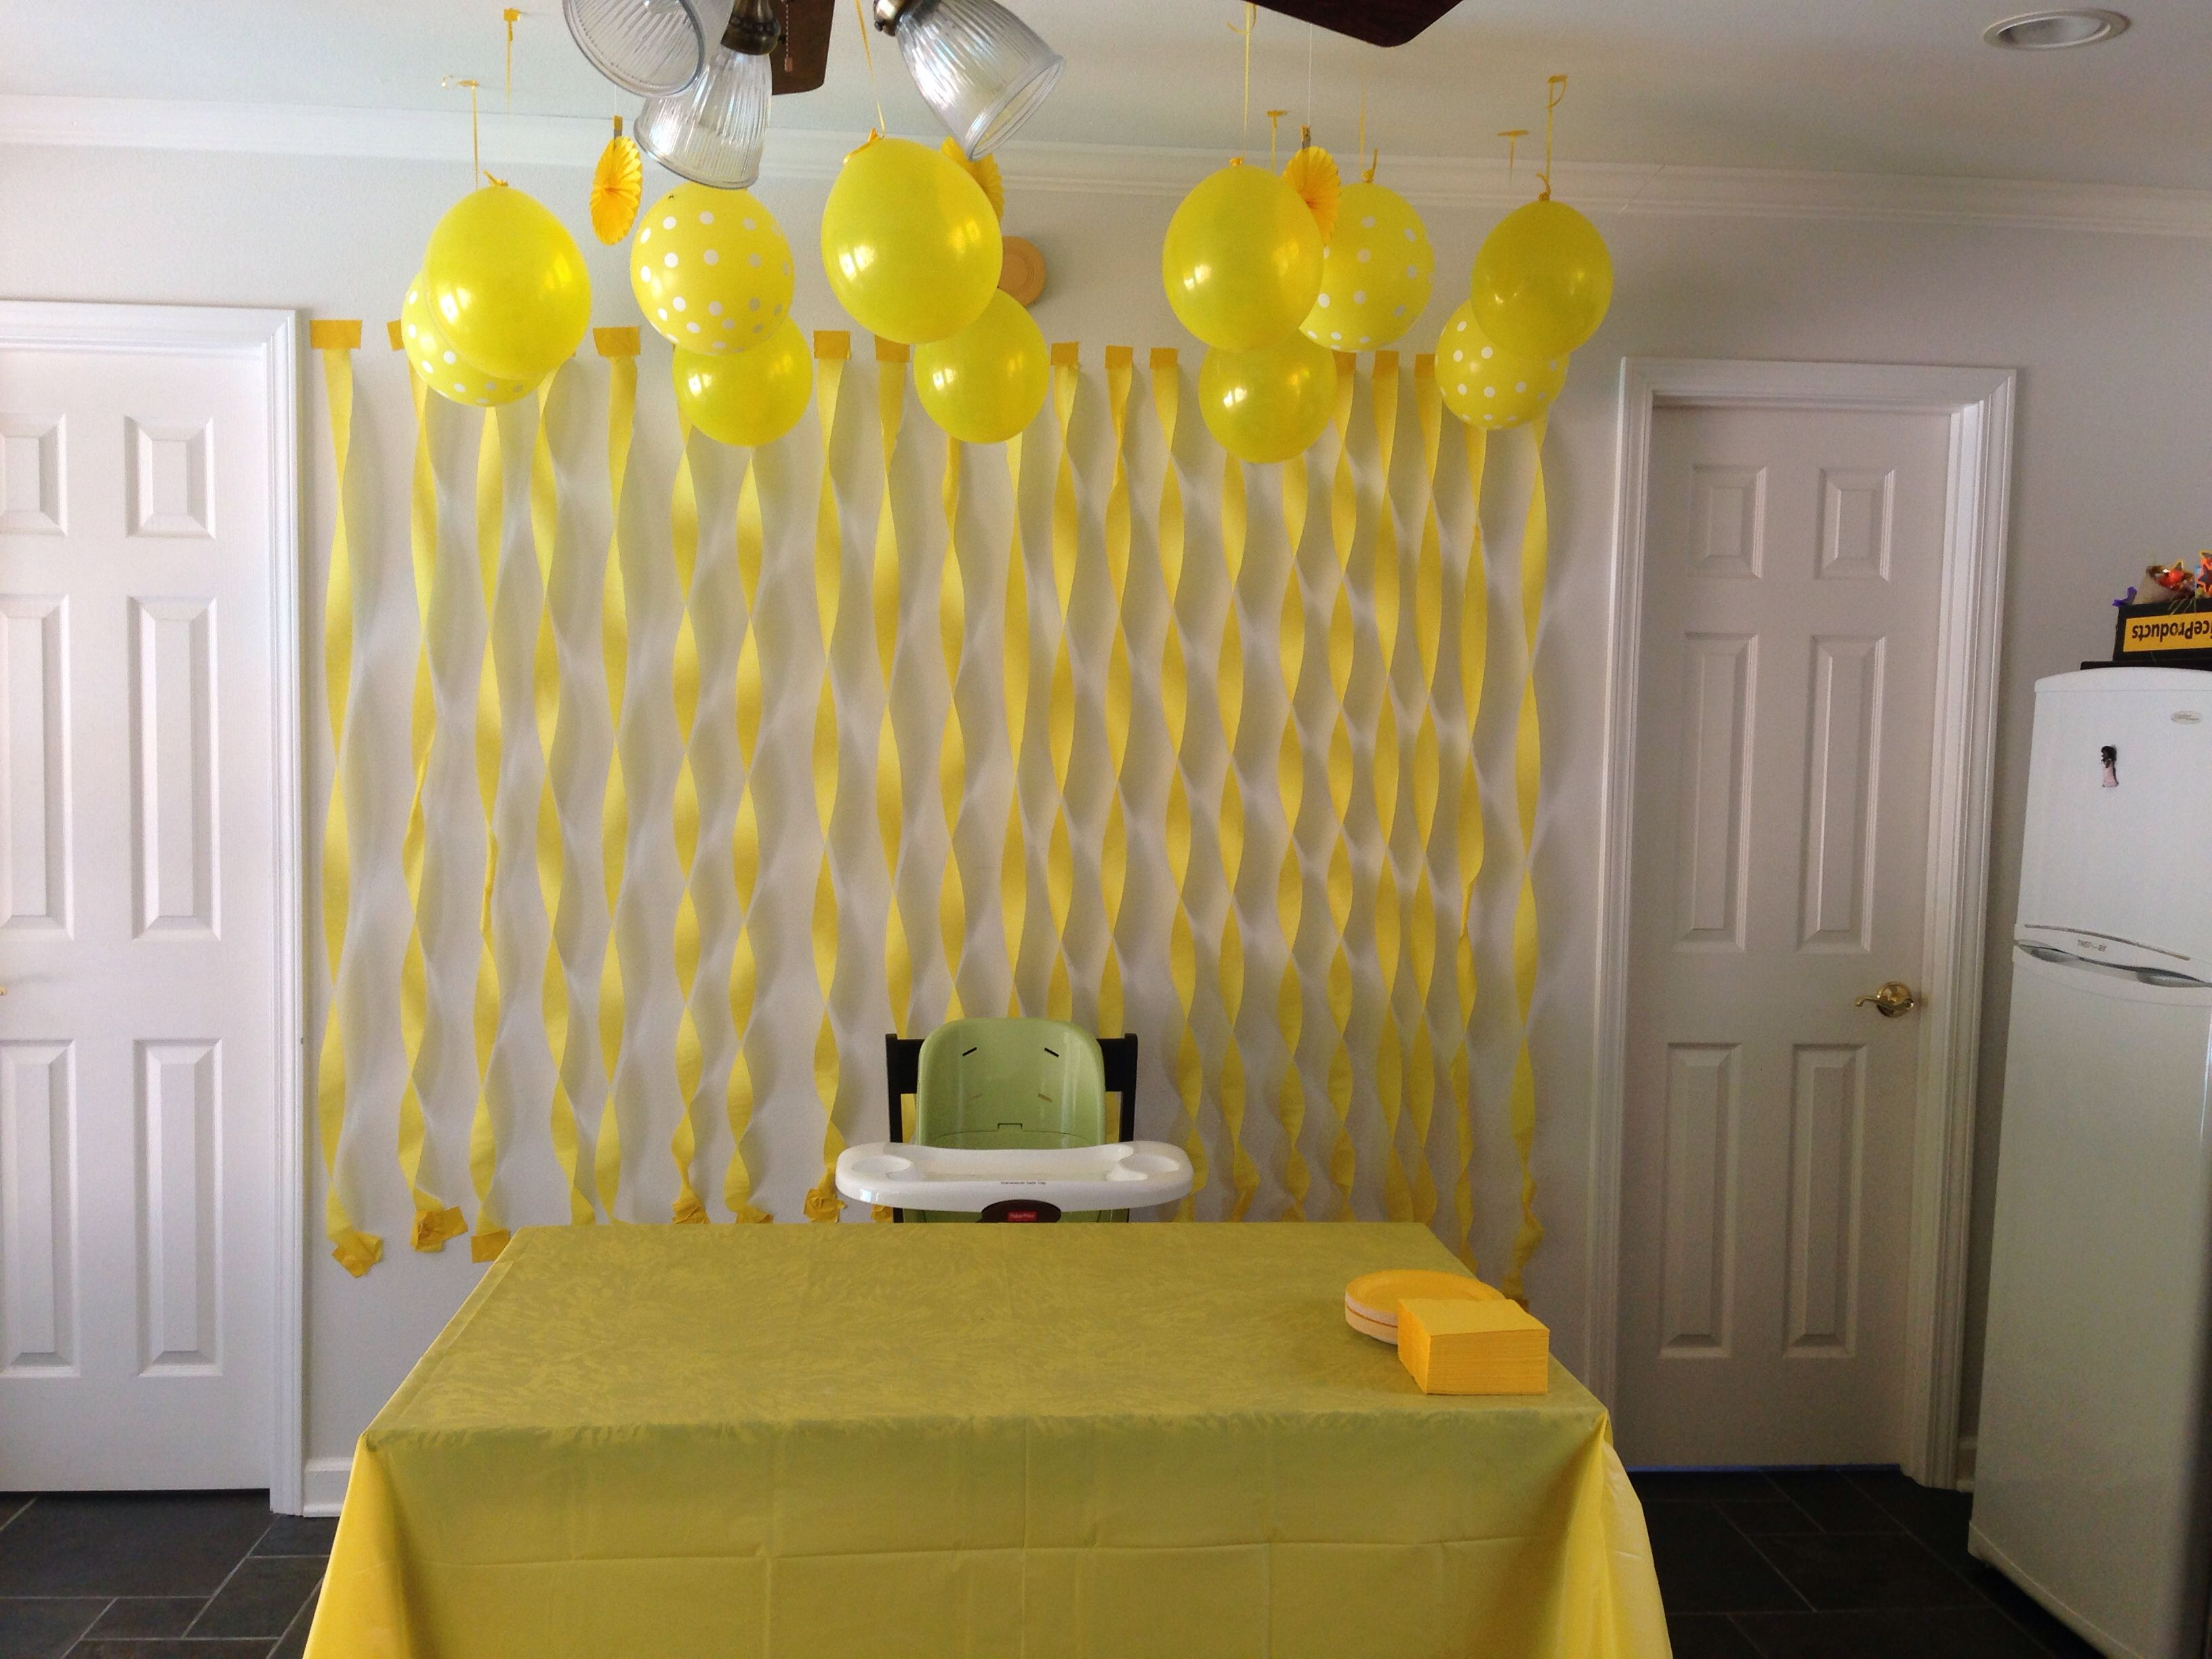 Sunshine party cake table decor -yellow streamers -yellow duck ...